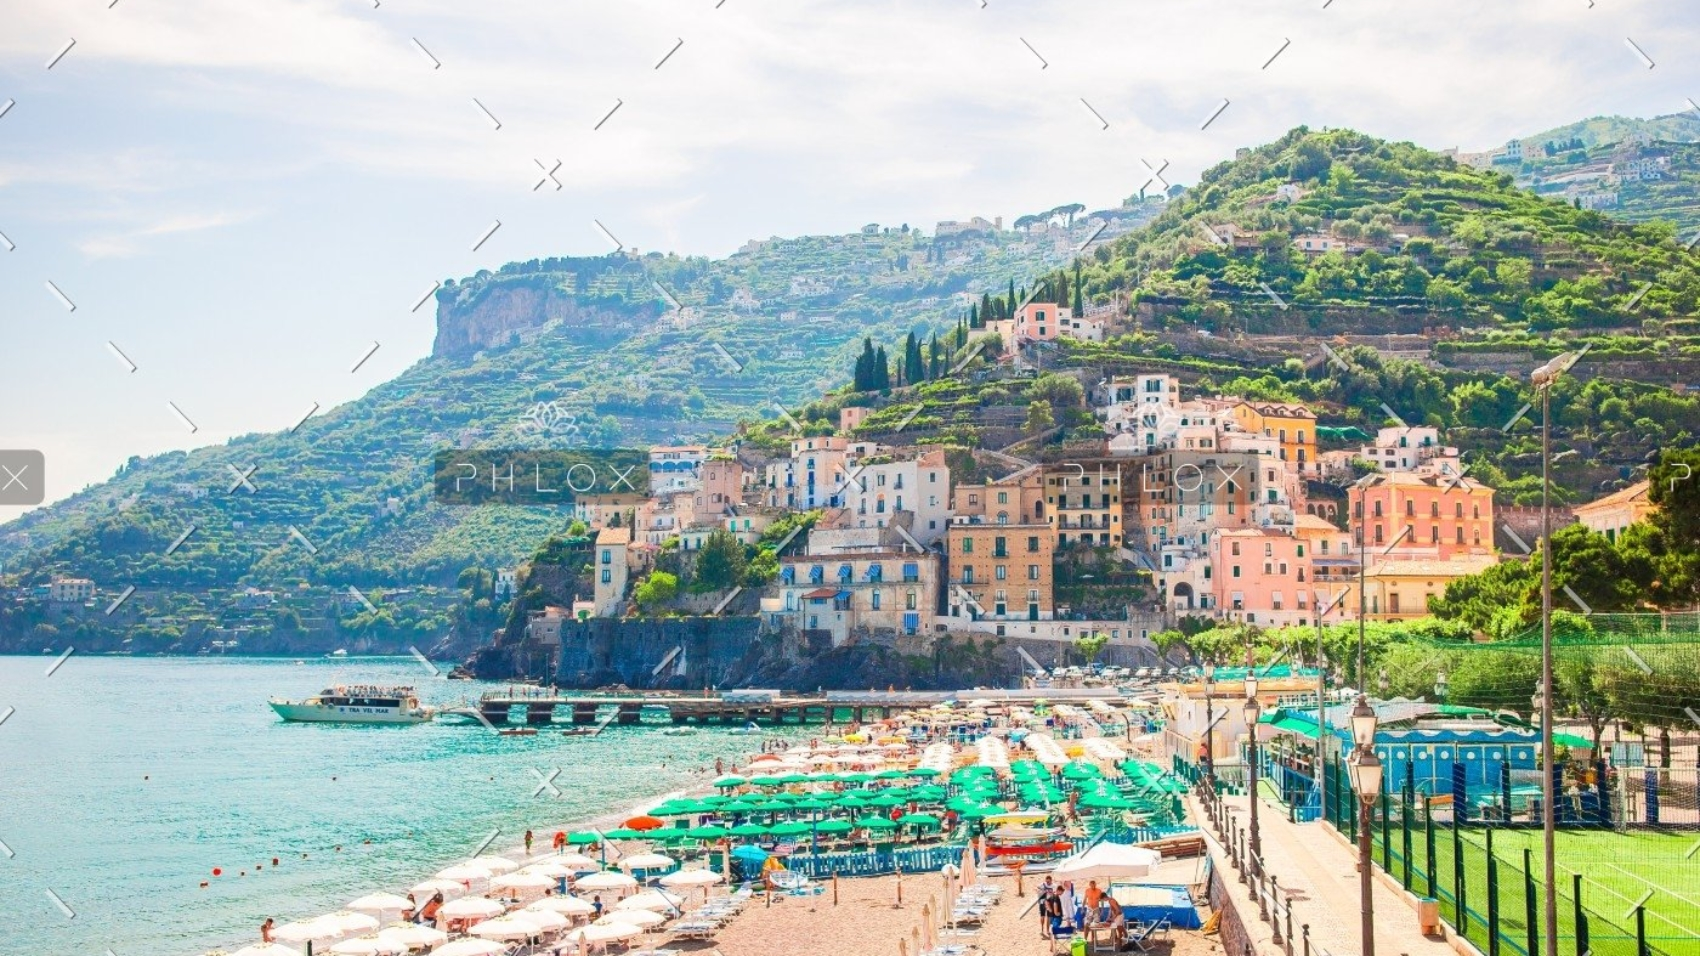 demo-attachment-155-beautiful-coastal-towns-of-italy-scenic-amalfi-M96DQV4